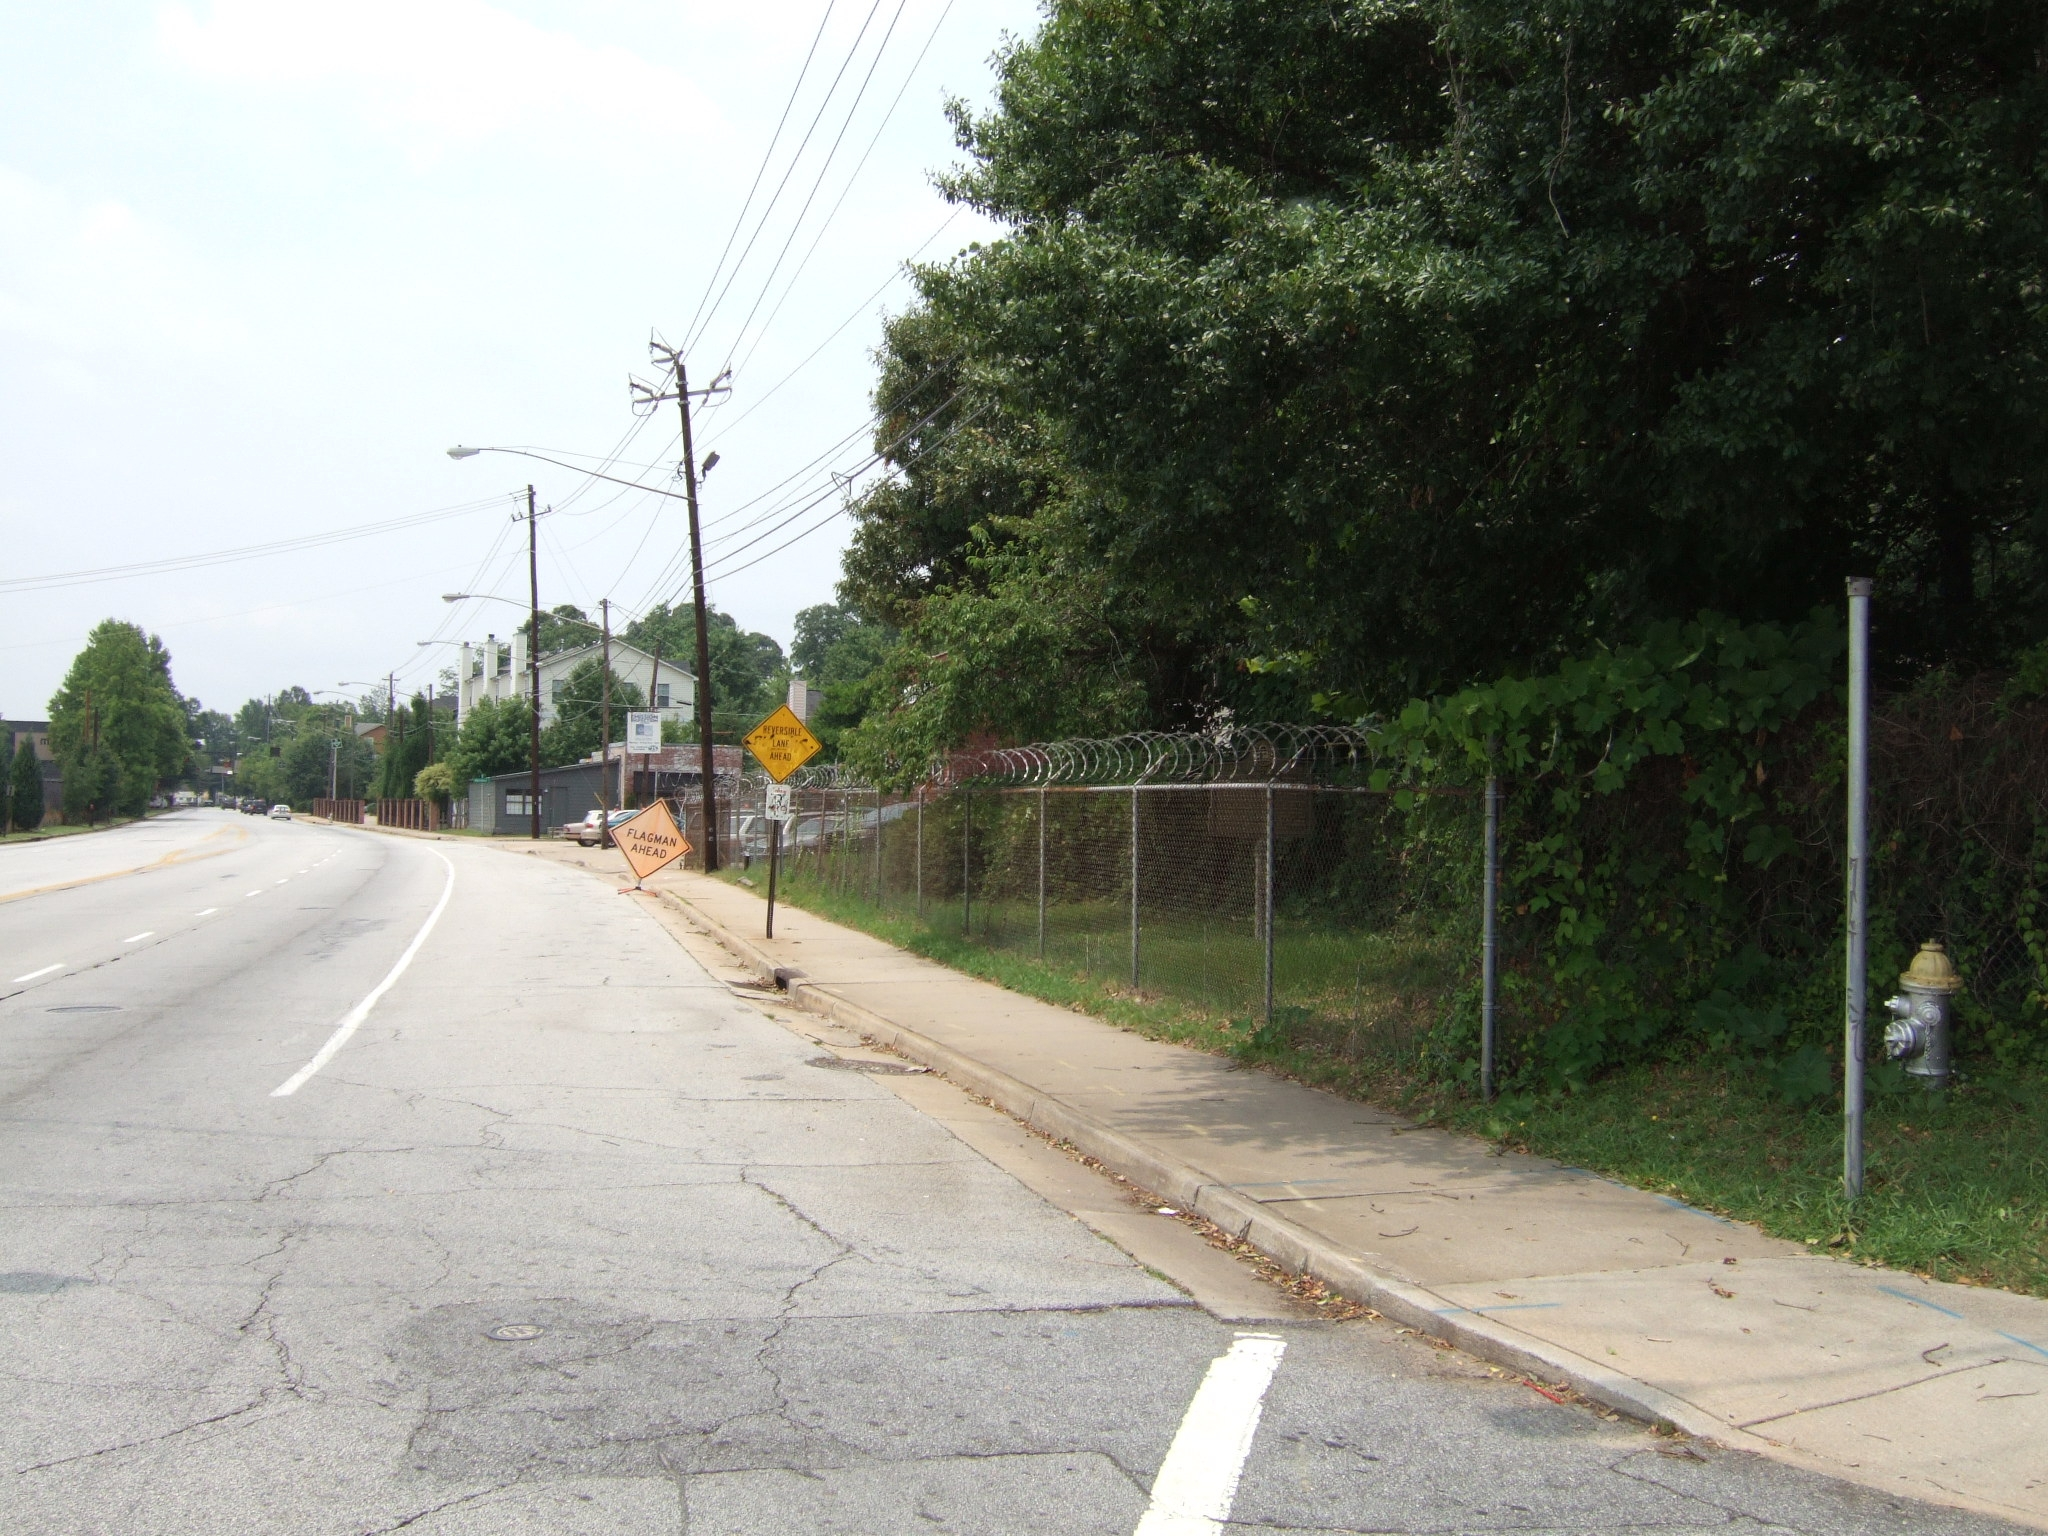 View from Marker towards DeGress Avenue